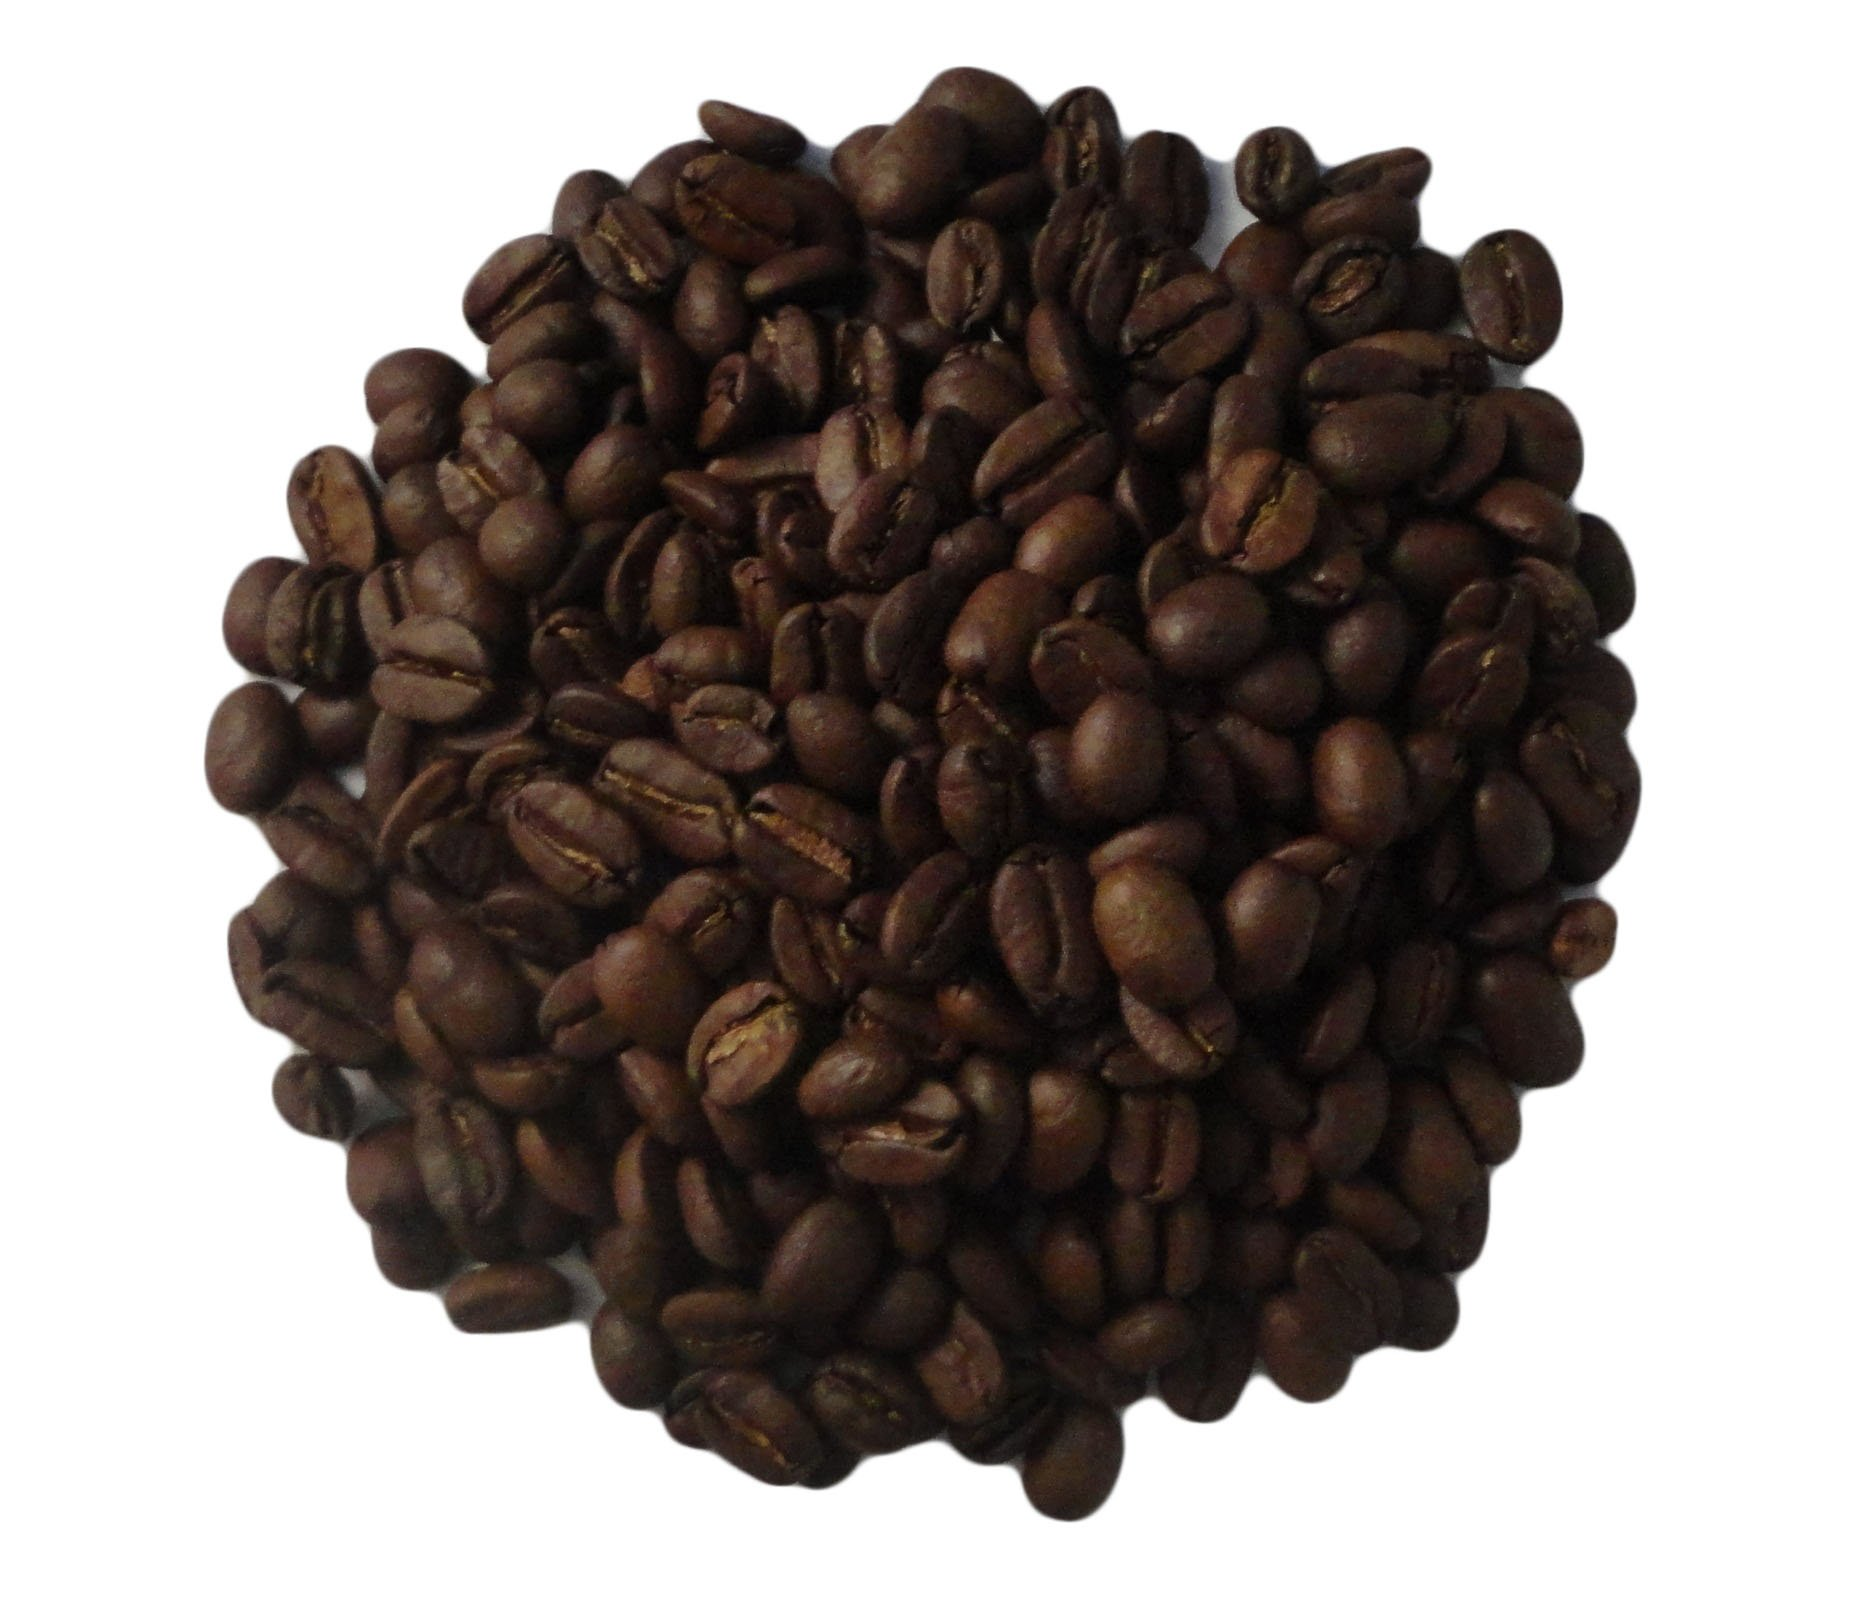 Hawaiian Kona Extra Fancy Coffee - 100% pure, NOT A BLEND! Best from Hawaii - Roasted Beans in a 1lb Vacuum Sealed Re-closable Bag with one way degassing valve.